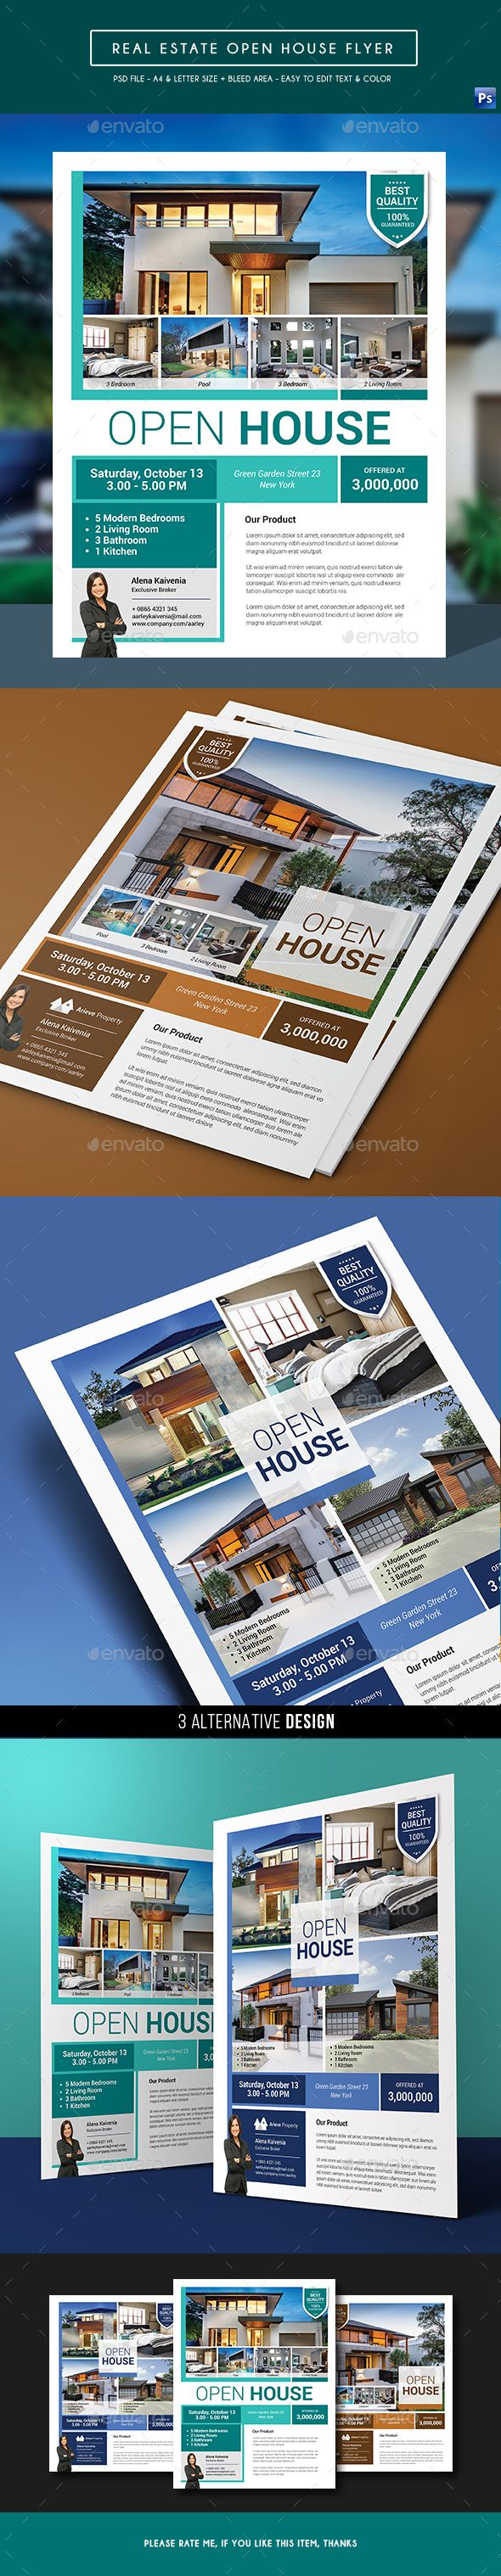 Real Estate  Open House Flyer  Open House Real Estate And Edit Text